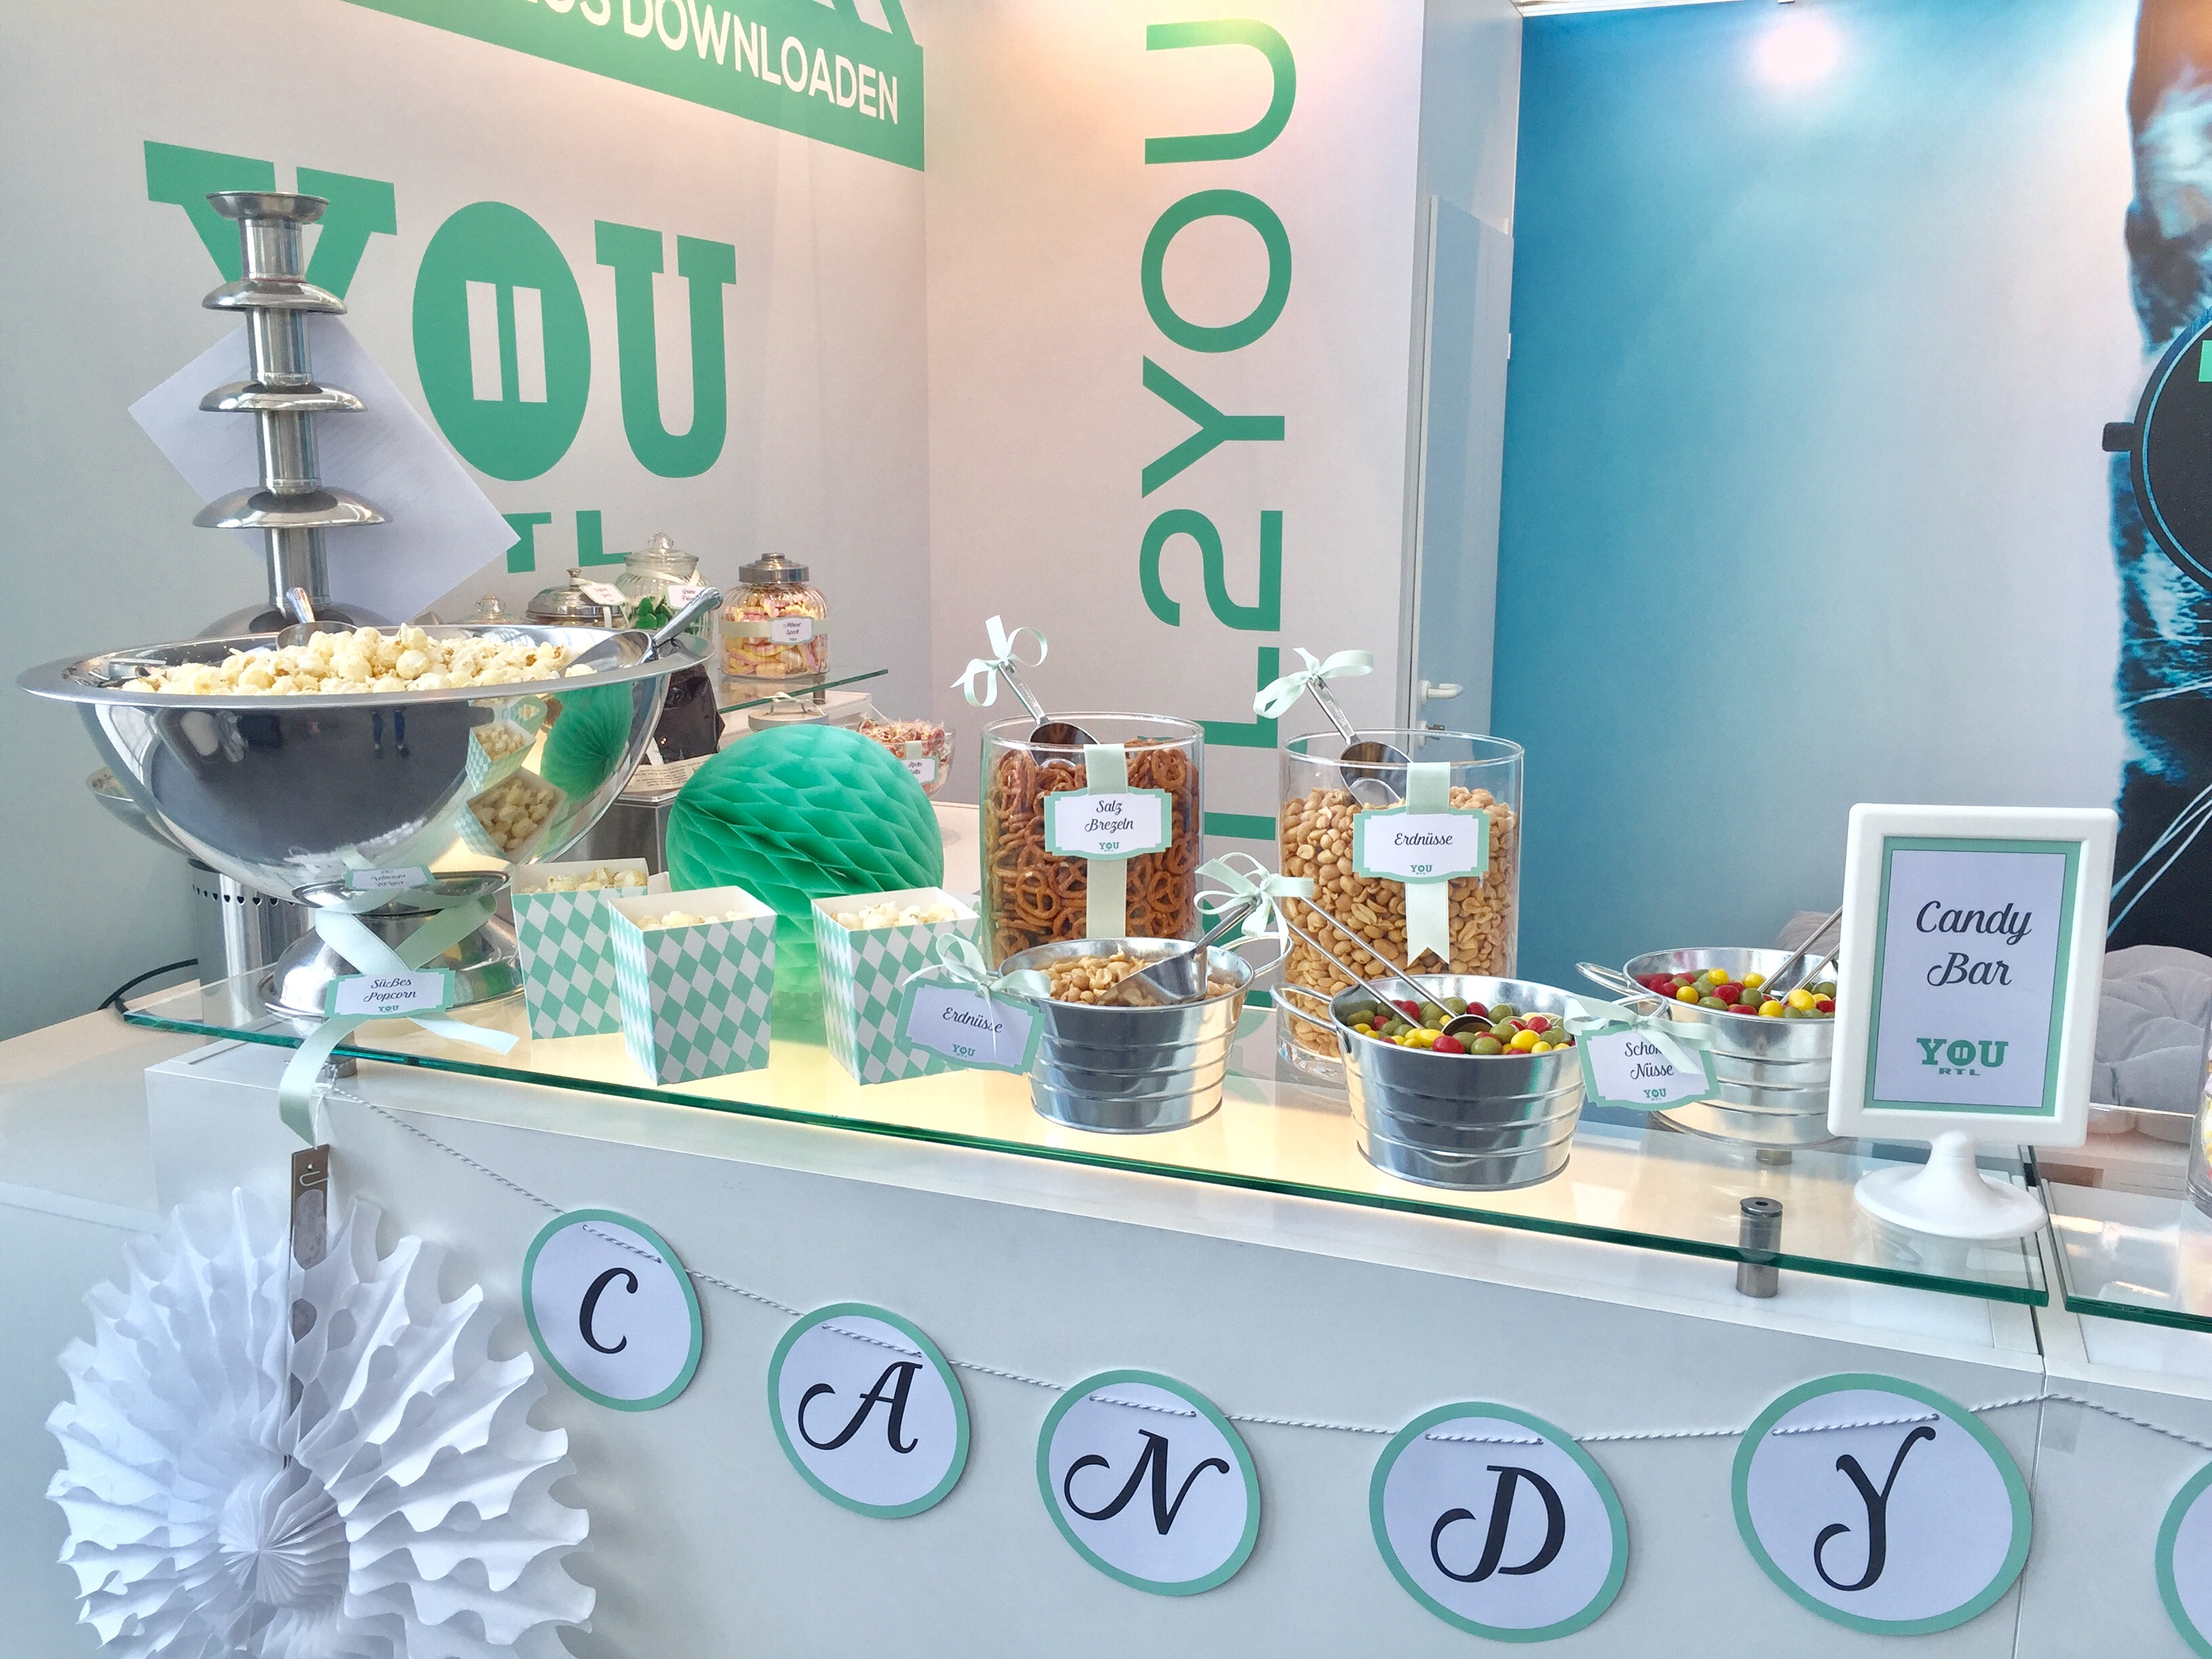 candybar-stuttgart-mieten-event-messe-you-rtl2-dokoration